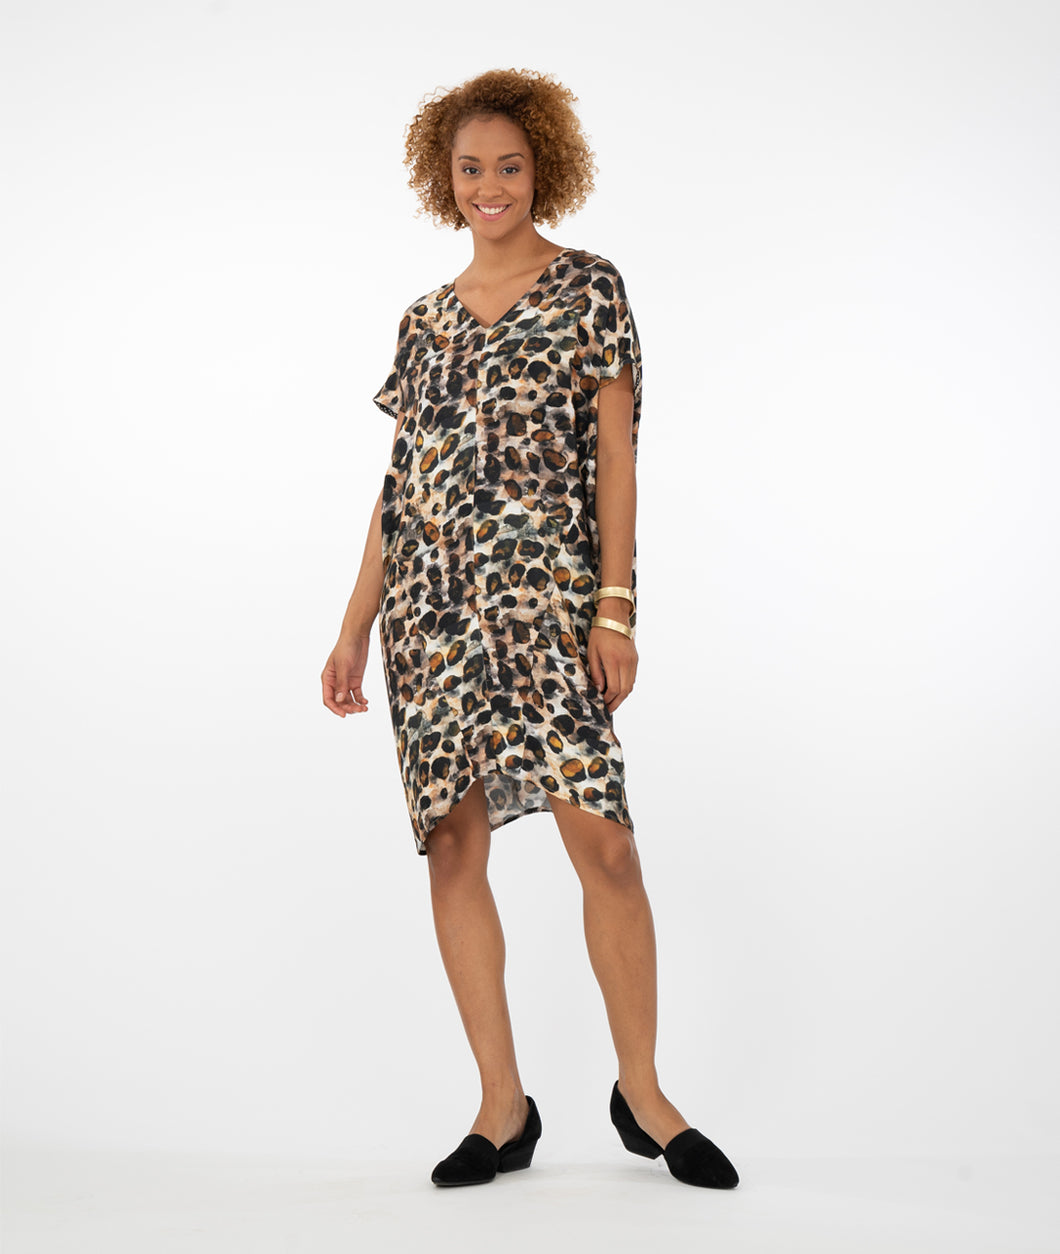 model wearing an animal print dress in front of a white background